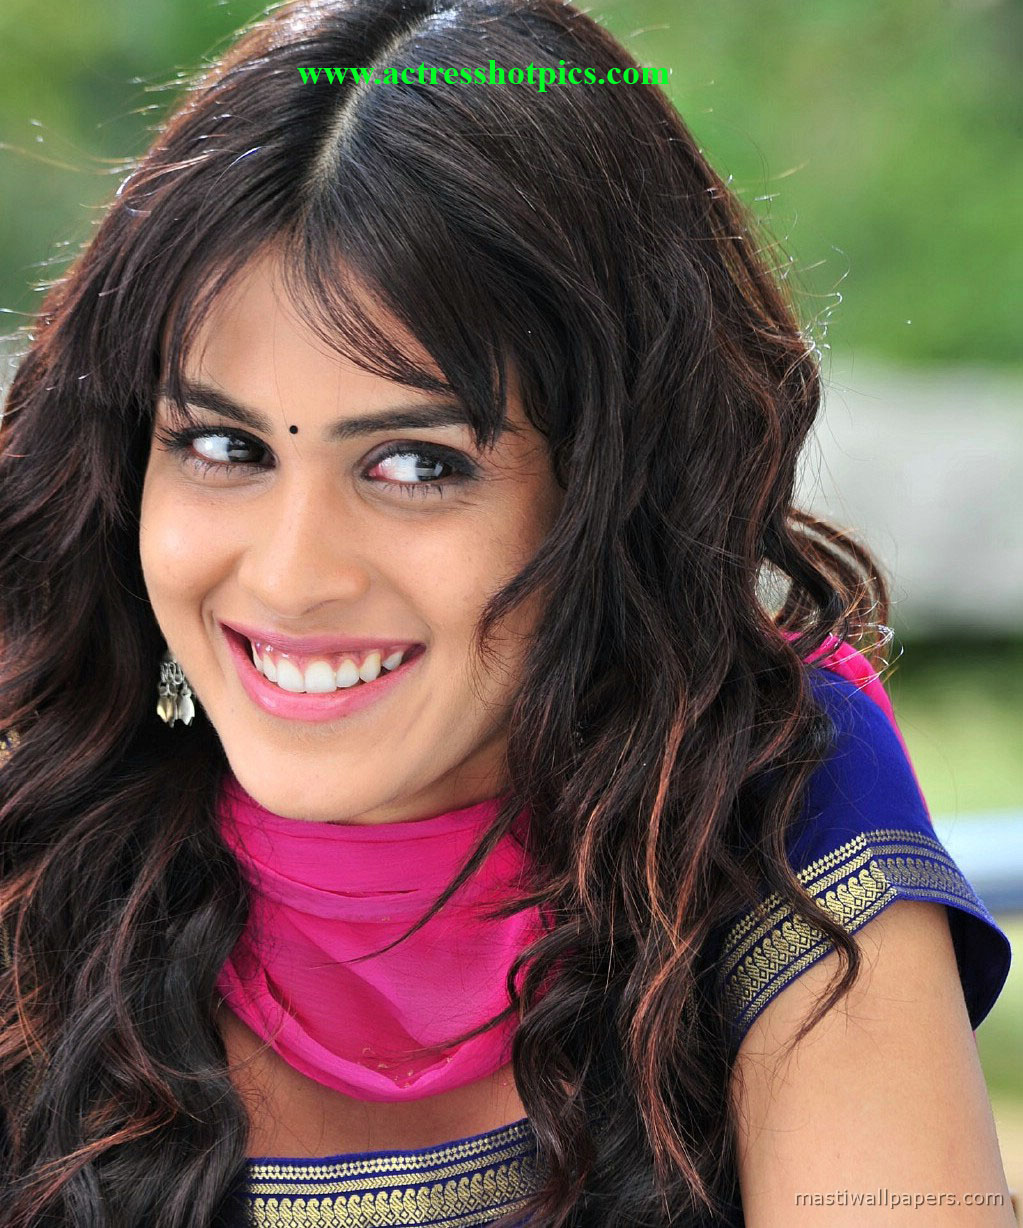 Tags genelia hot photos